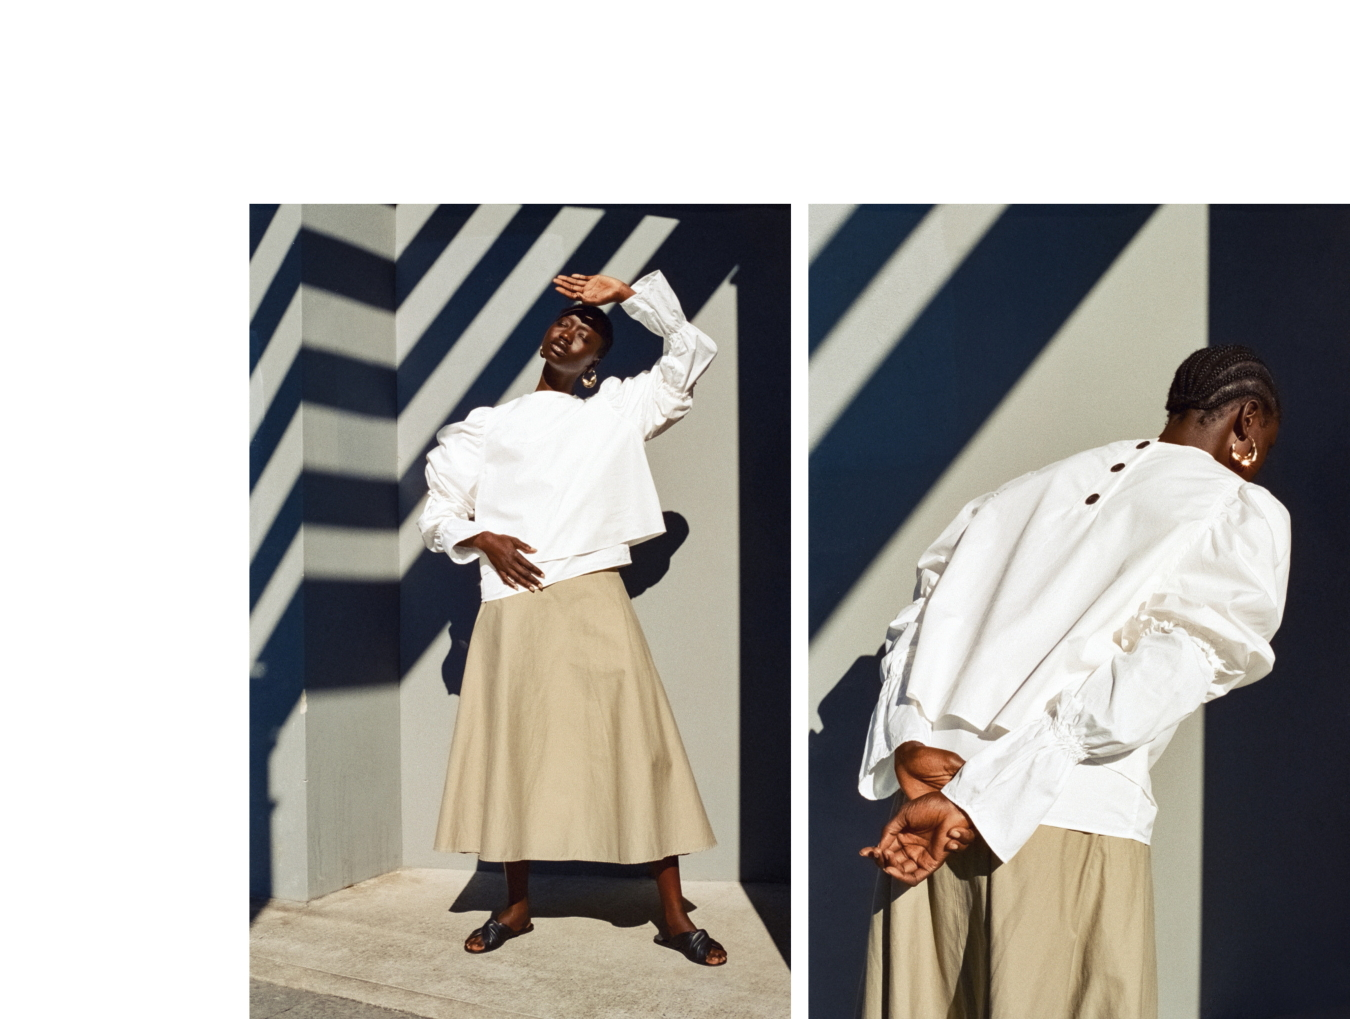 Toteme long sleeve top, Stylist's own top, Stylist's own skirt, Cos sandals, Stylist's own earrings